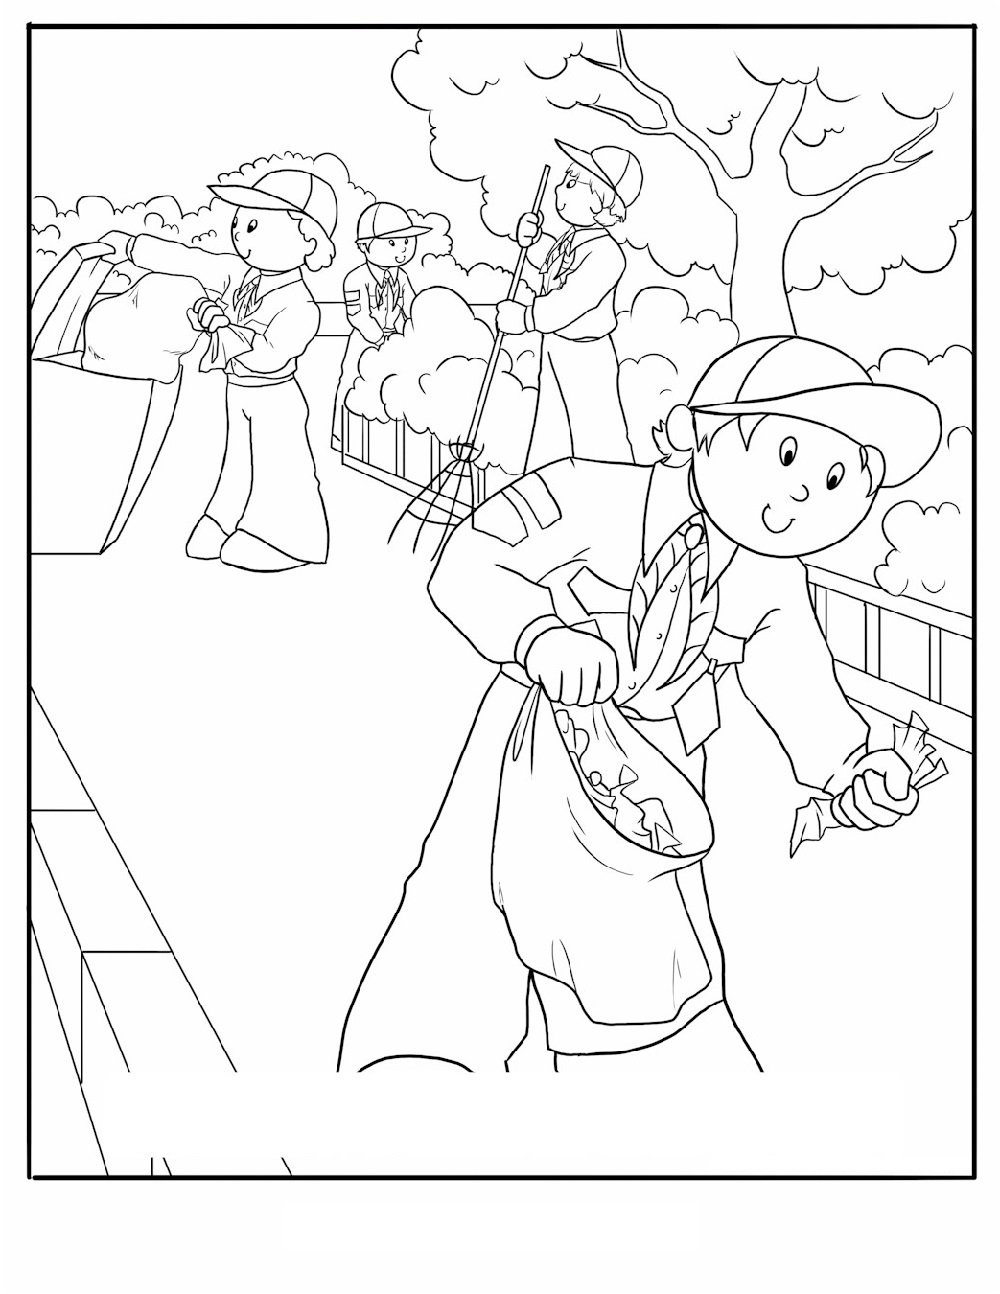 cub scout coloring pages 1